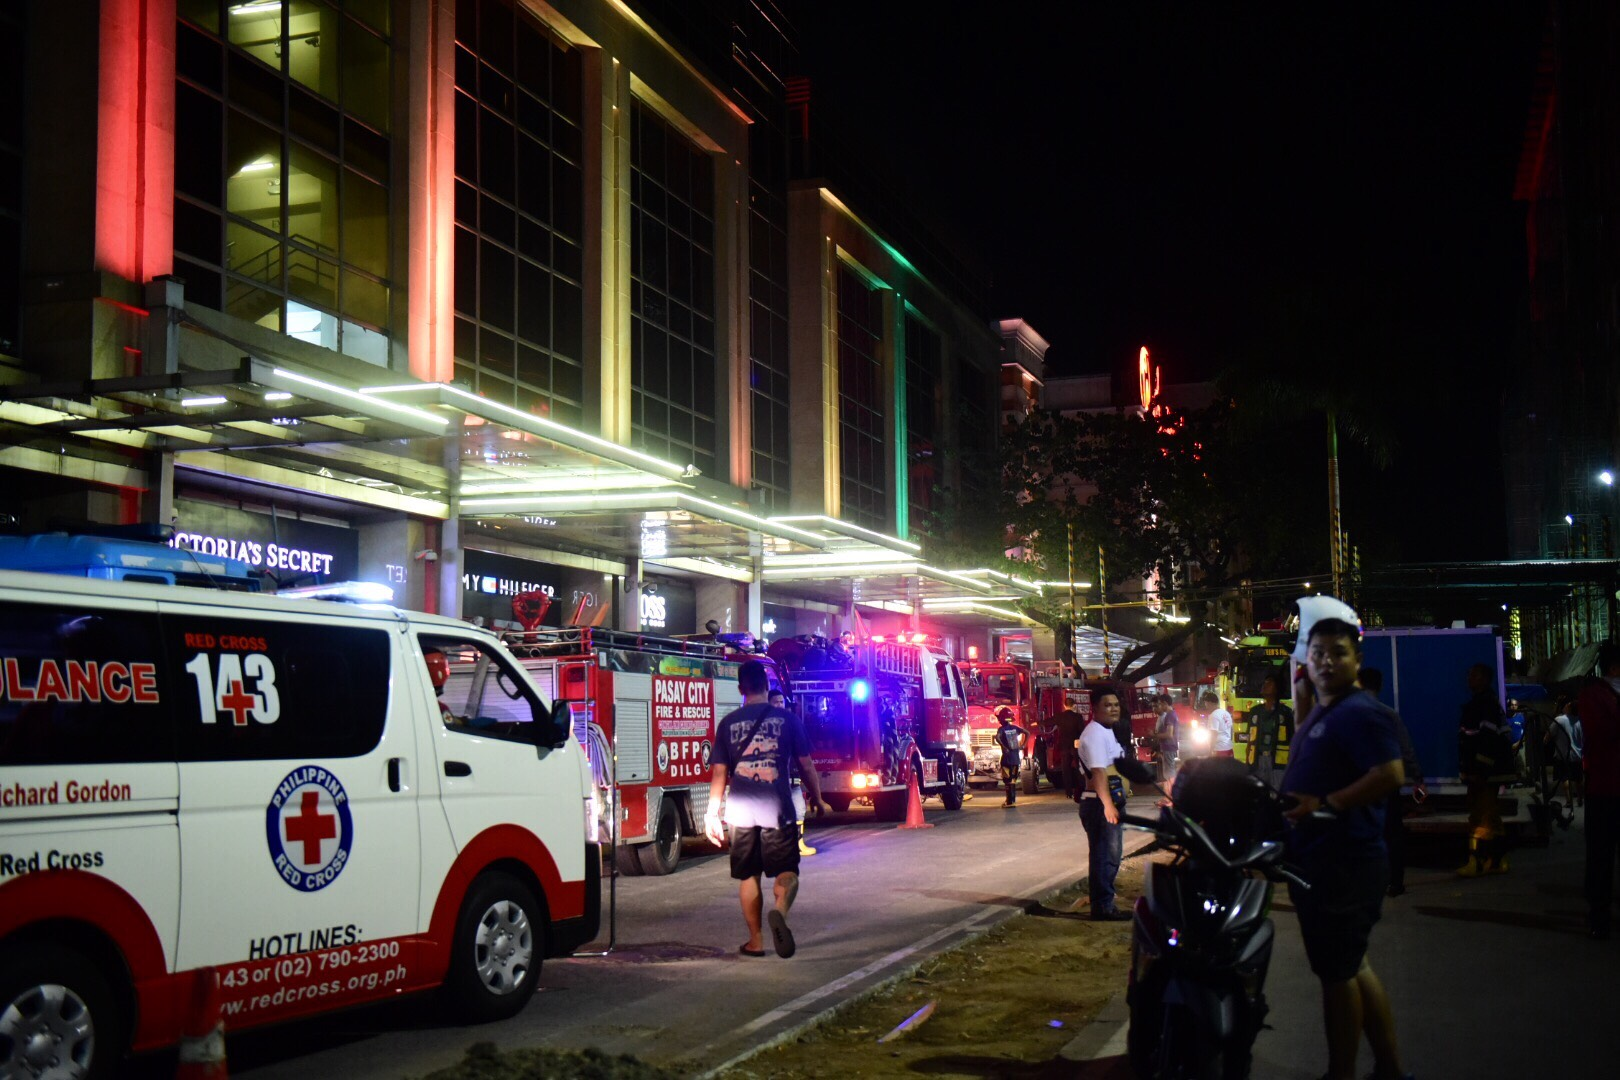 RESPONDERS. Ambulance and firetruck are on standby at Resorts World Manila entrance on Friday, June 2, 2017. Photo by Alecs Ongcal/Rappler